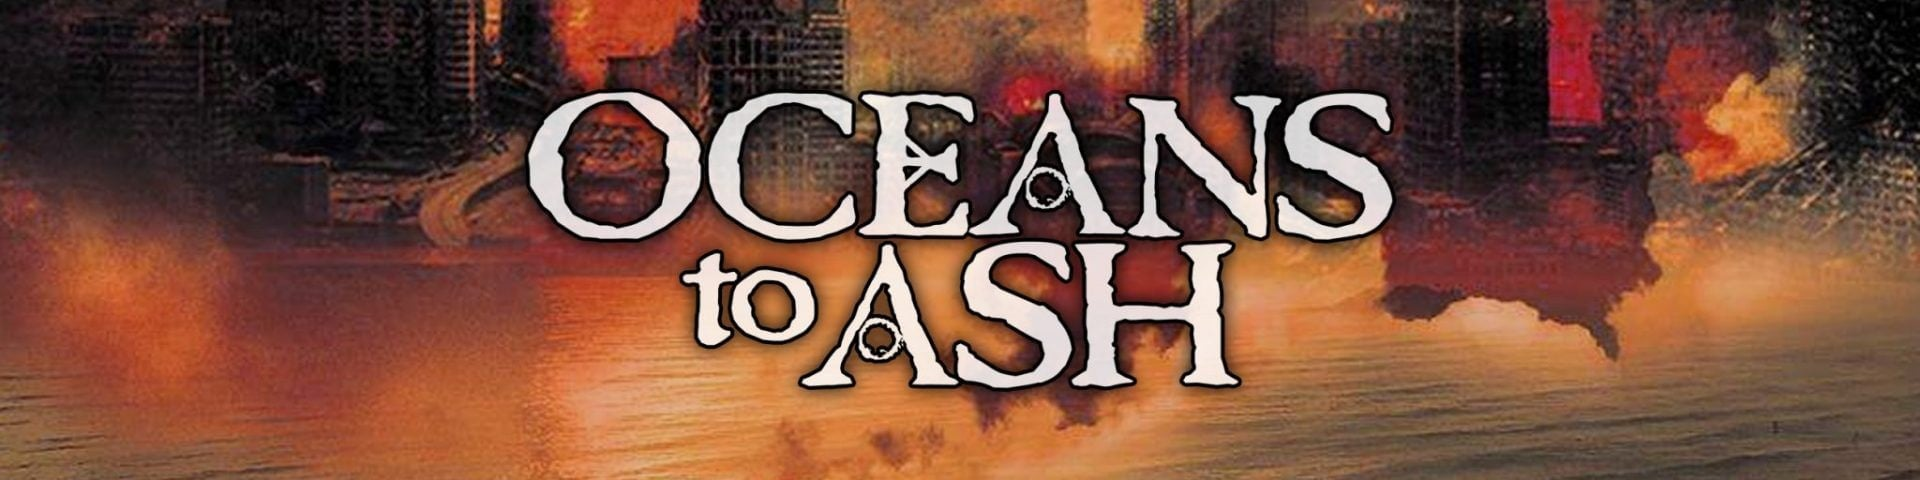 Oceans to Ash - Official Website